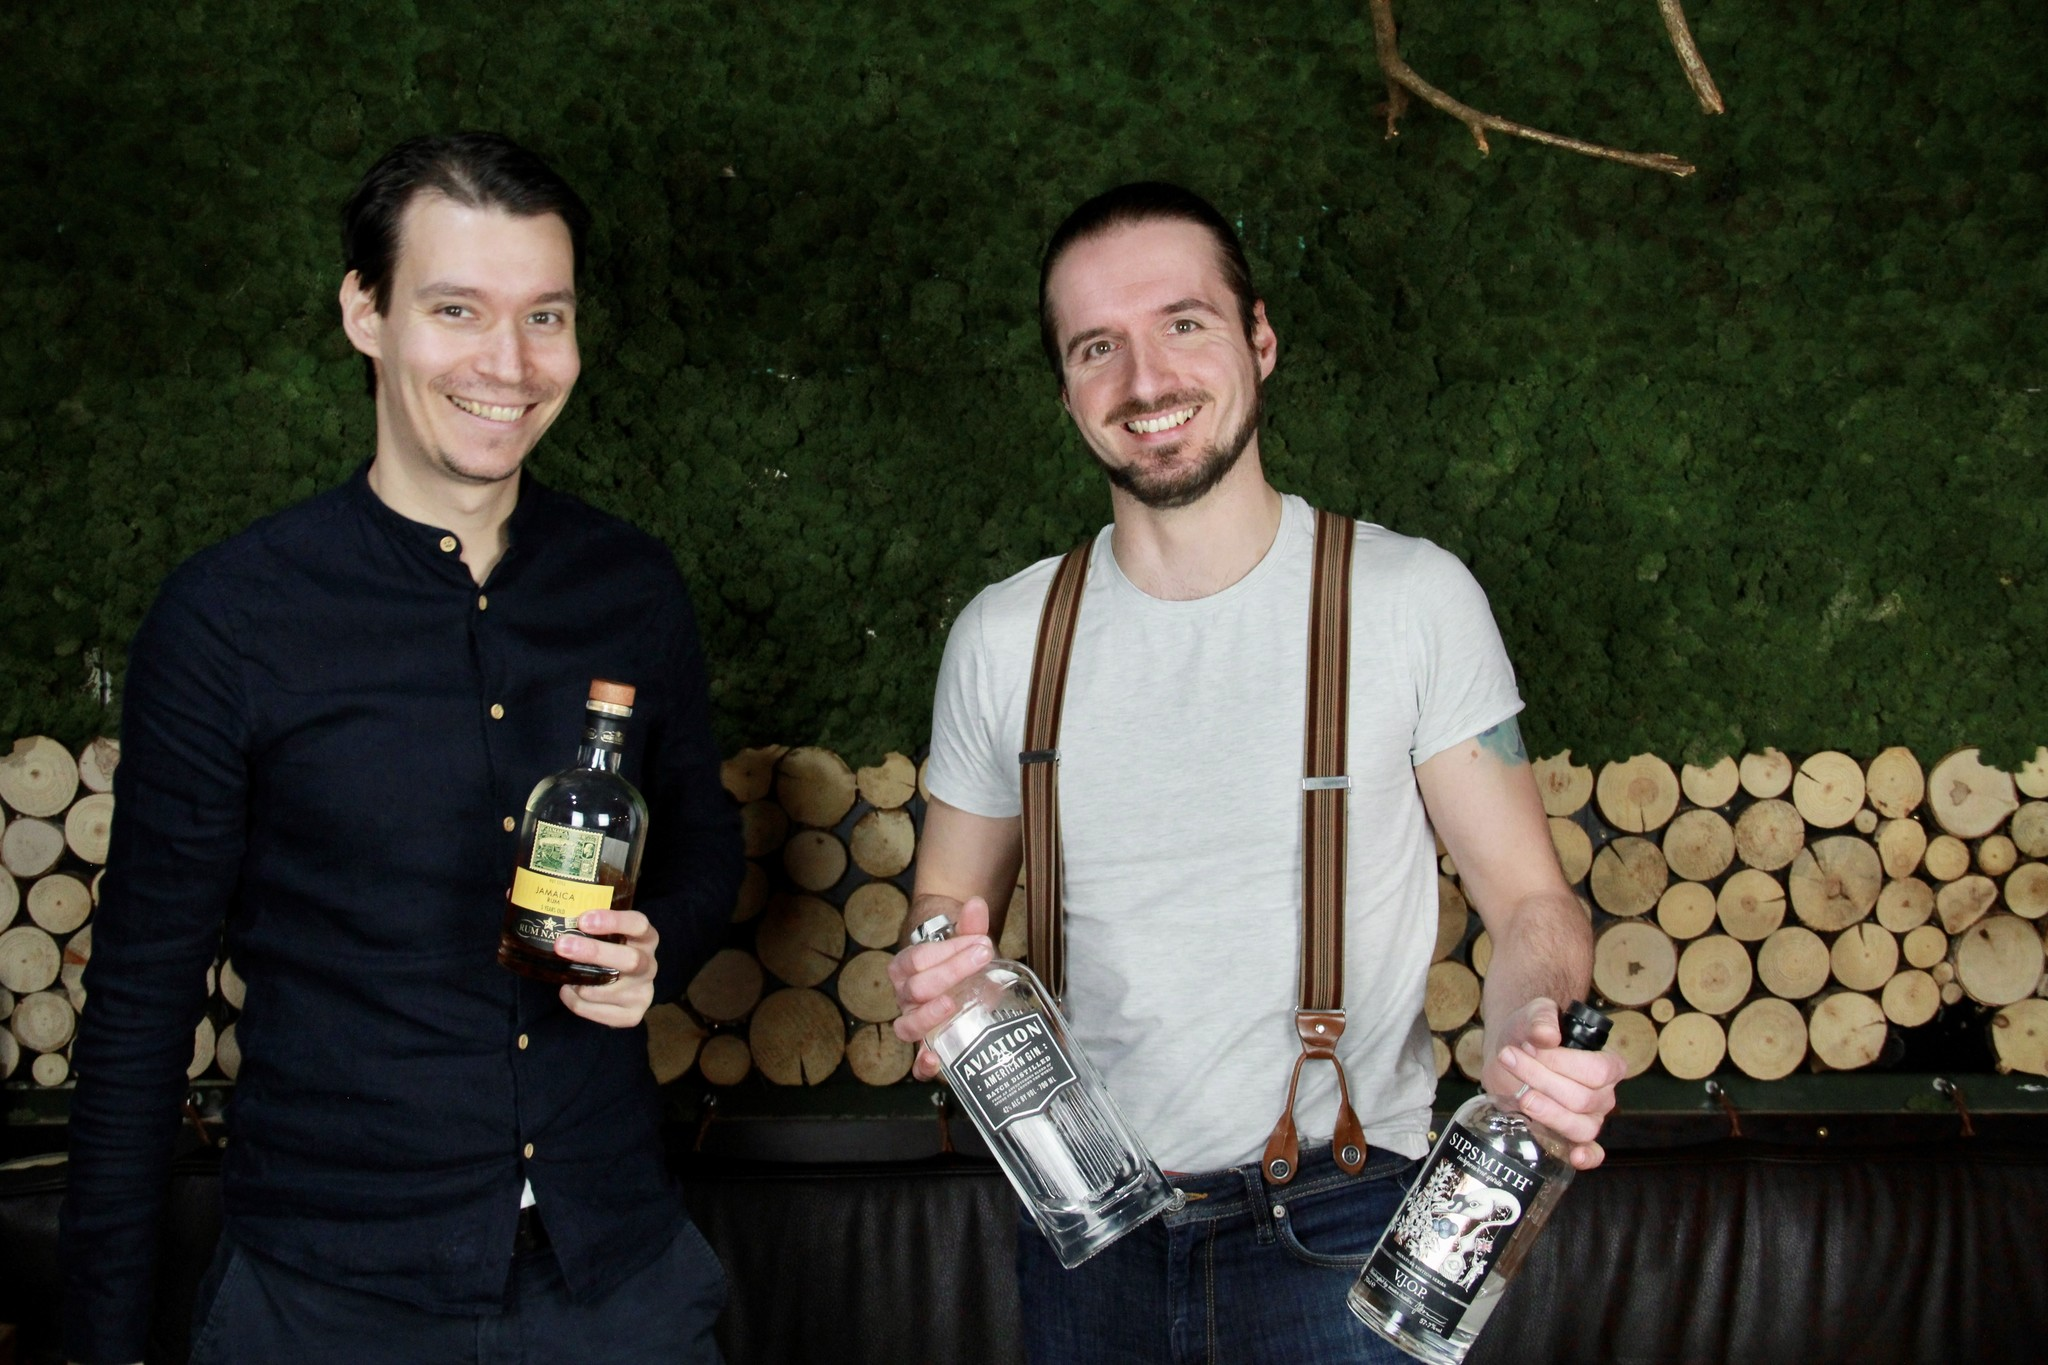 Gin Tasting at Home - Online Gin Tasting am  26.06.2021